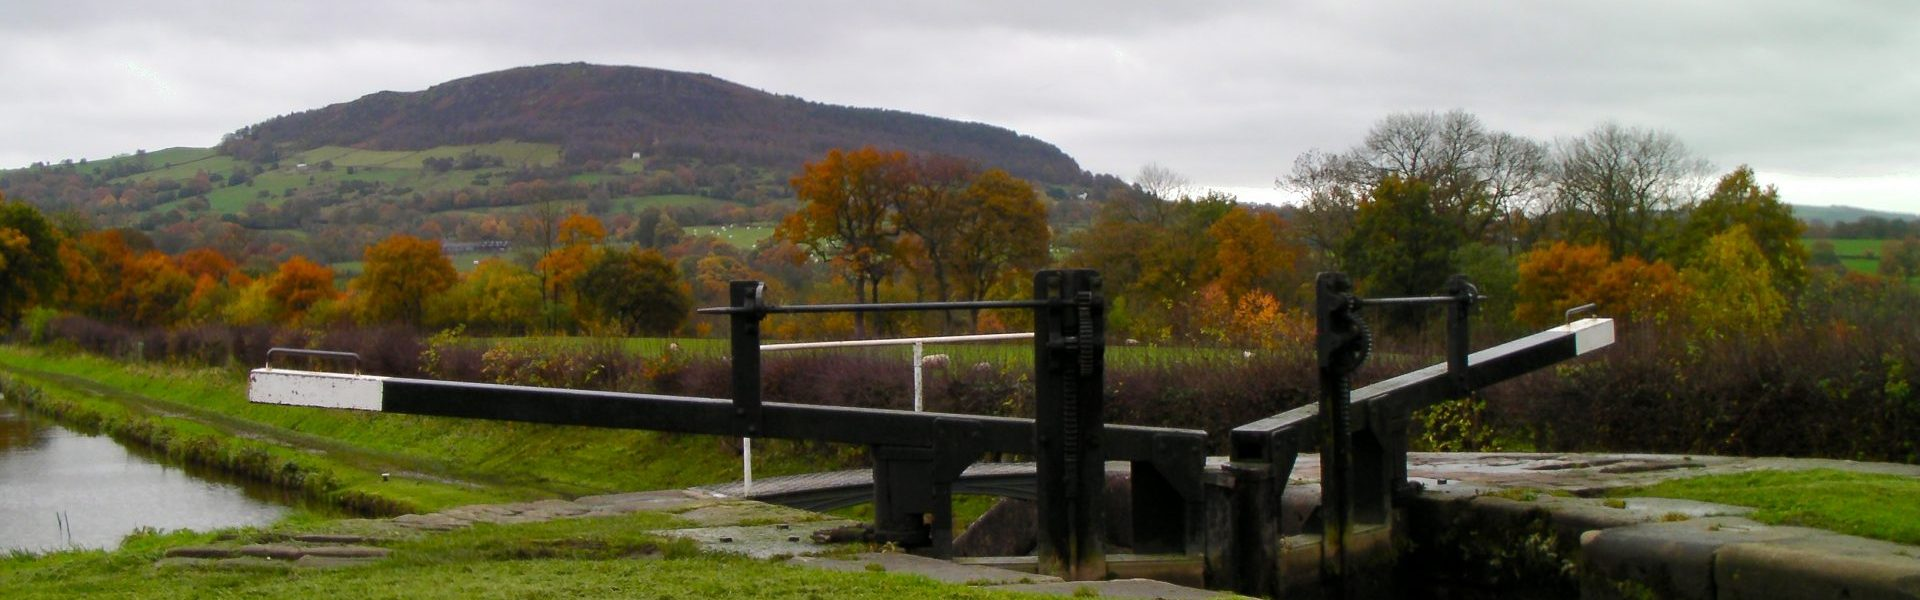 North Rode Locks